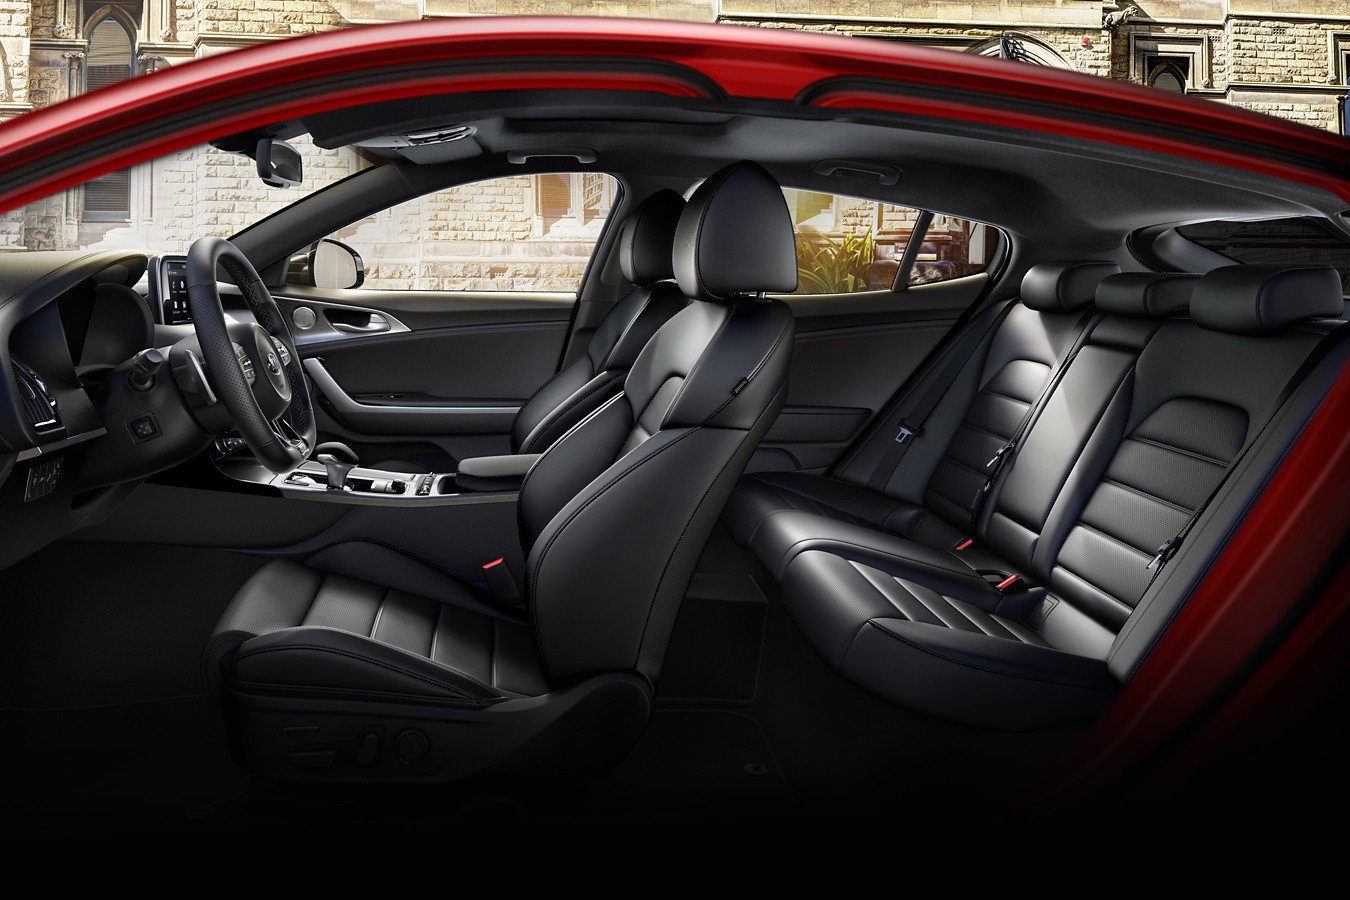 Cabin of the 2020 Stinger